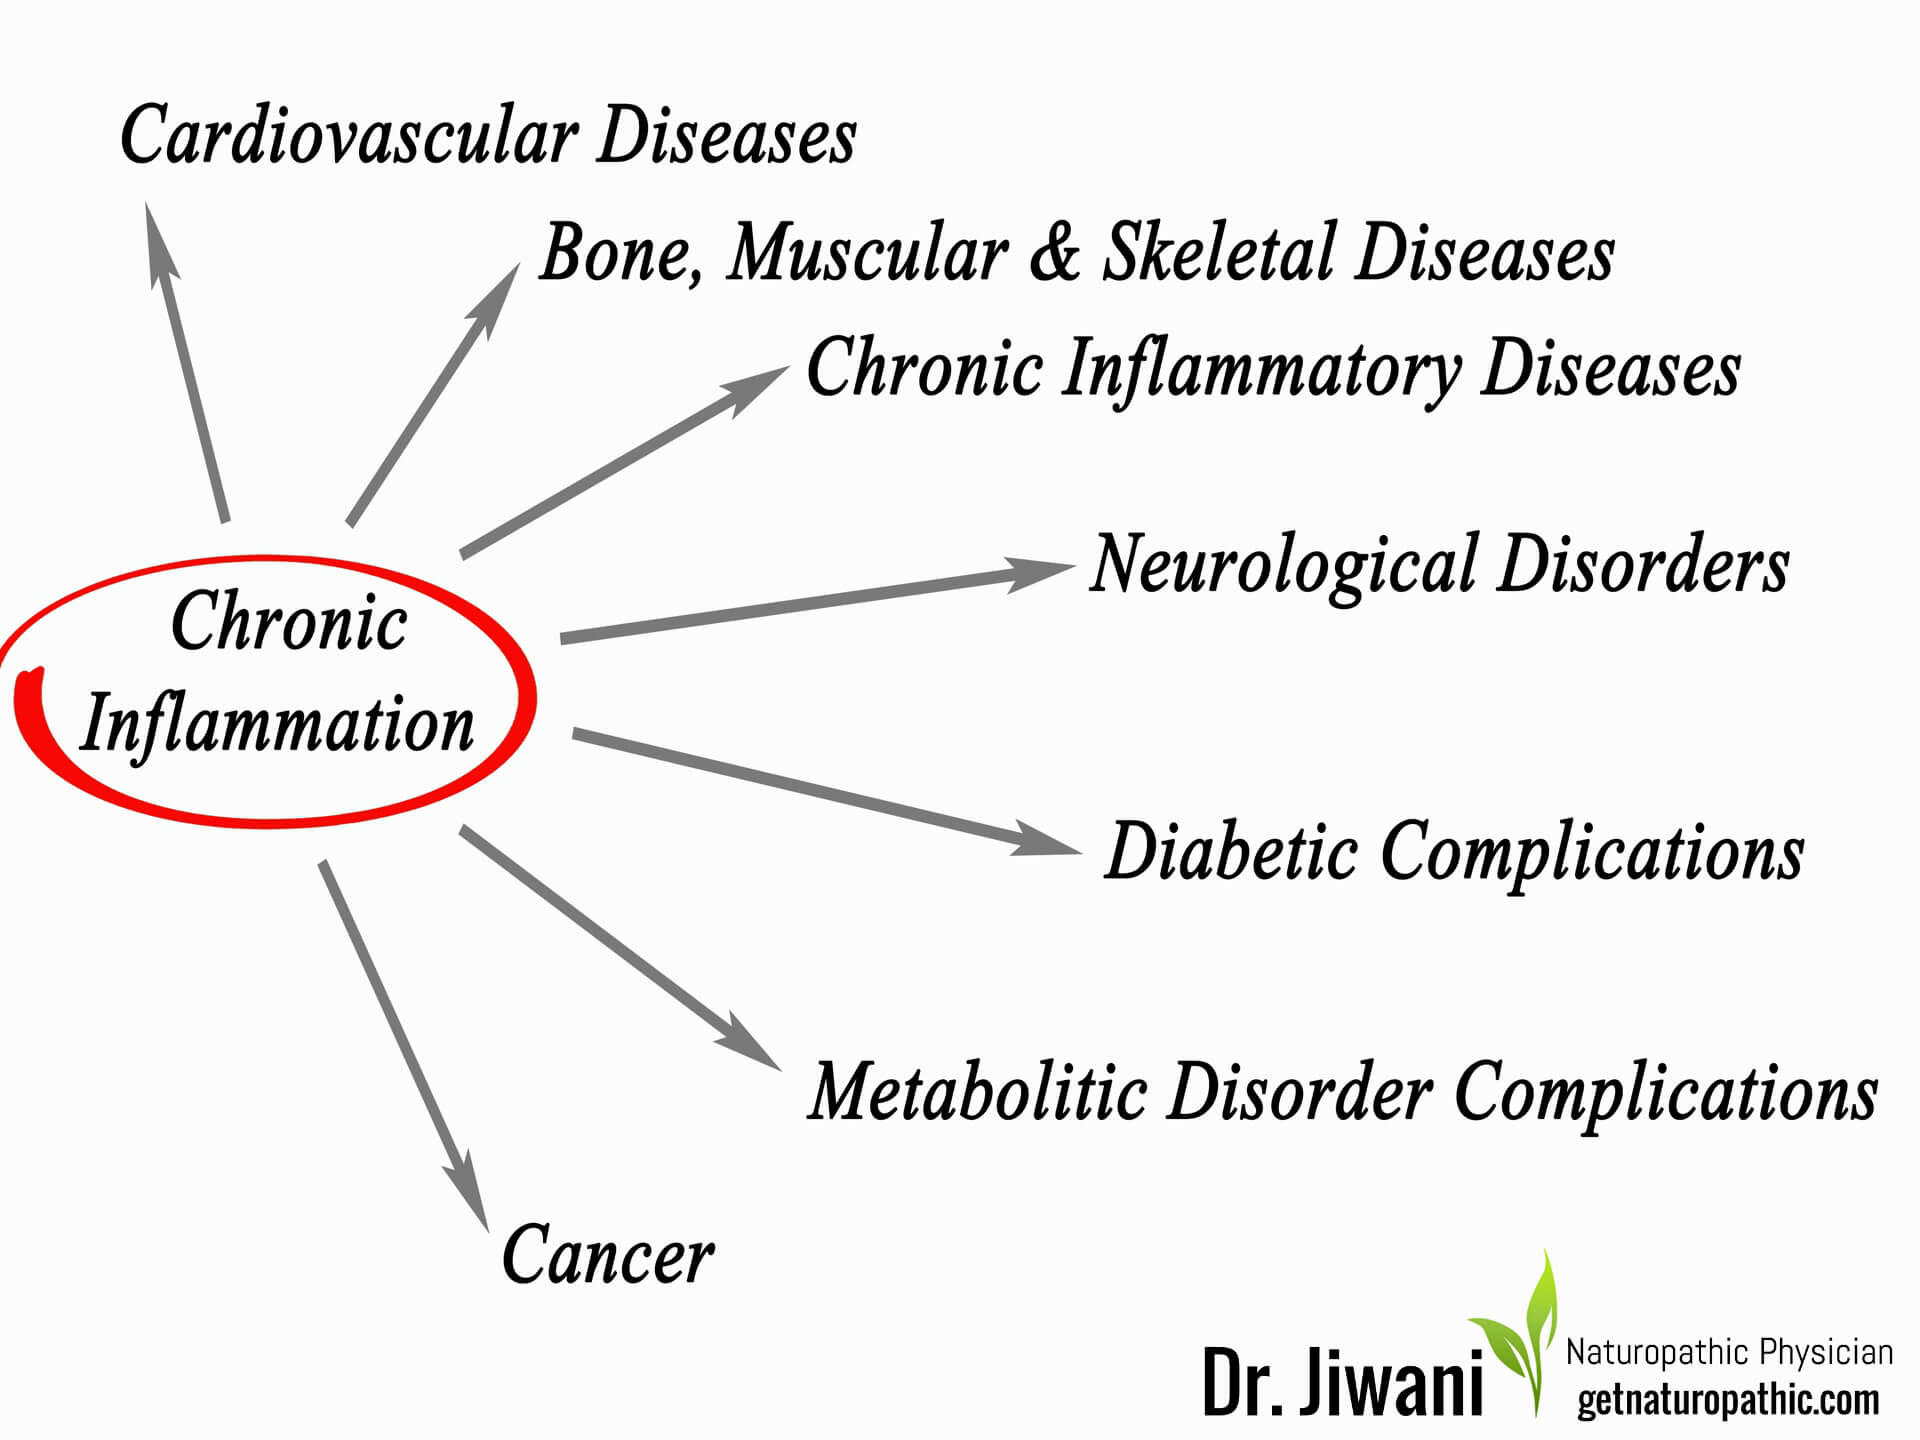 DrJiwani Intermittent Fasting for Health, Energy & Weight Loss Inflammation* | Dr. Jiwani's Naturopathic Nuggets Blog